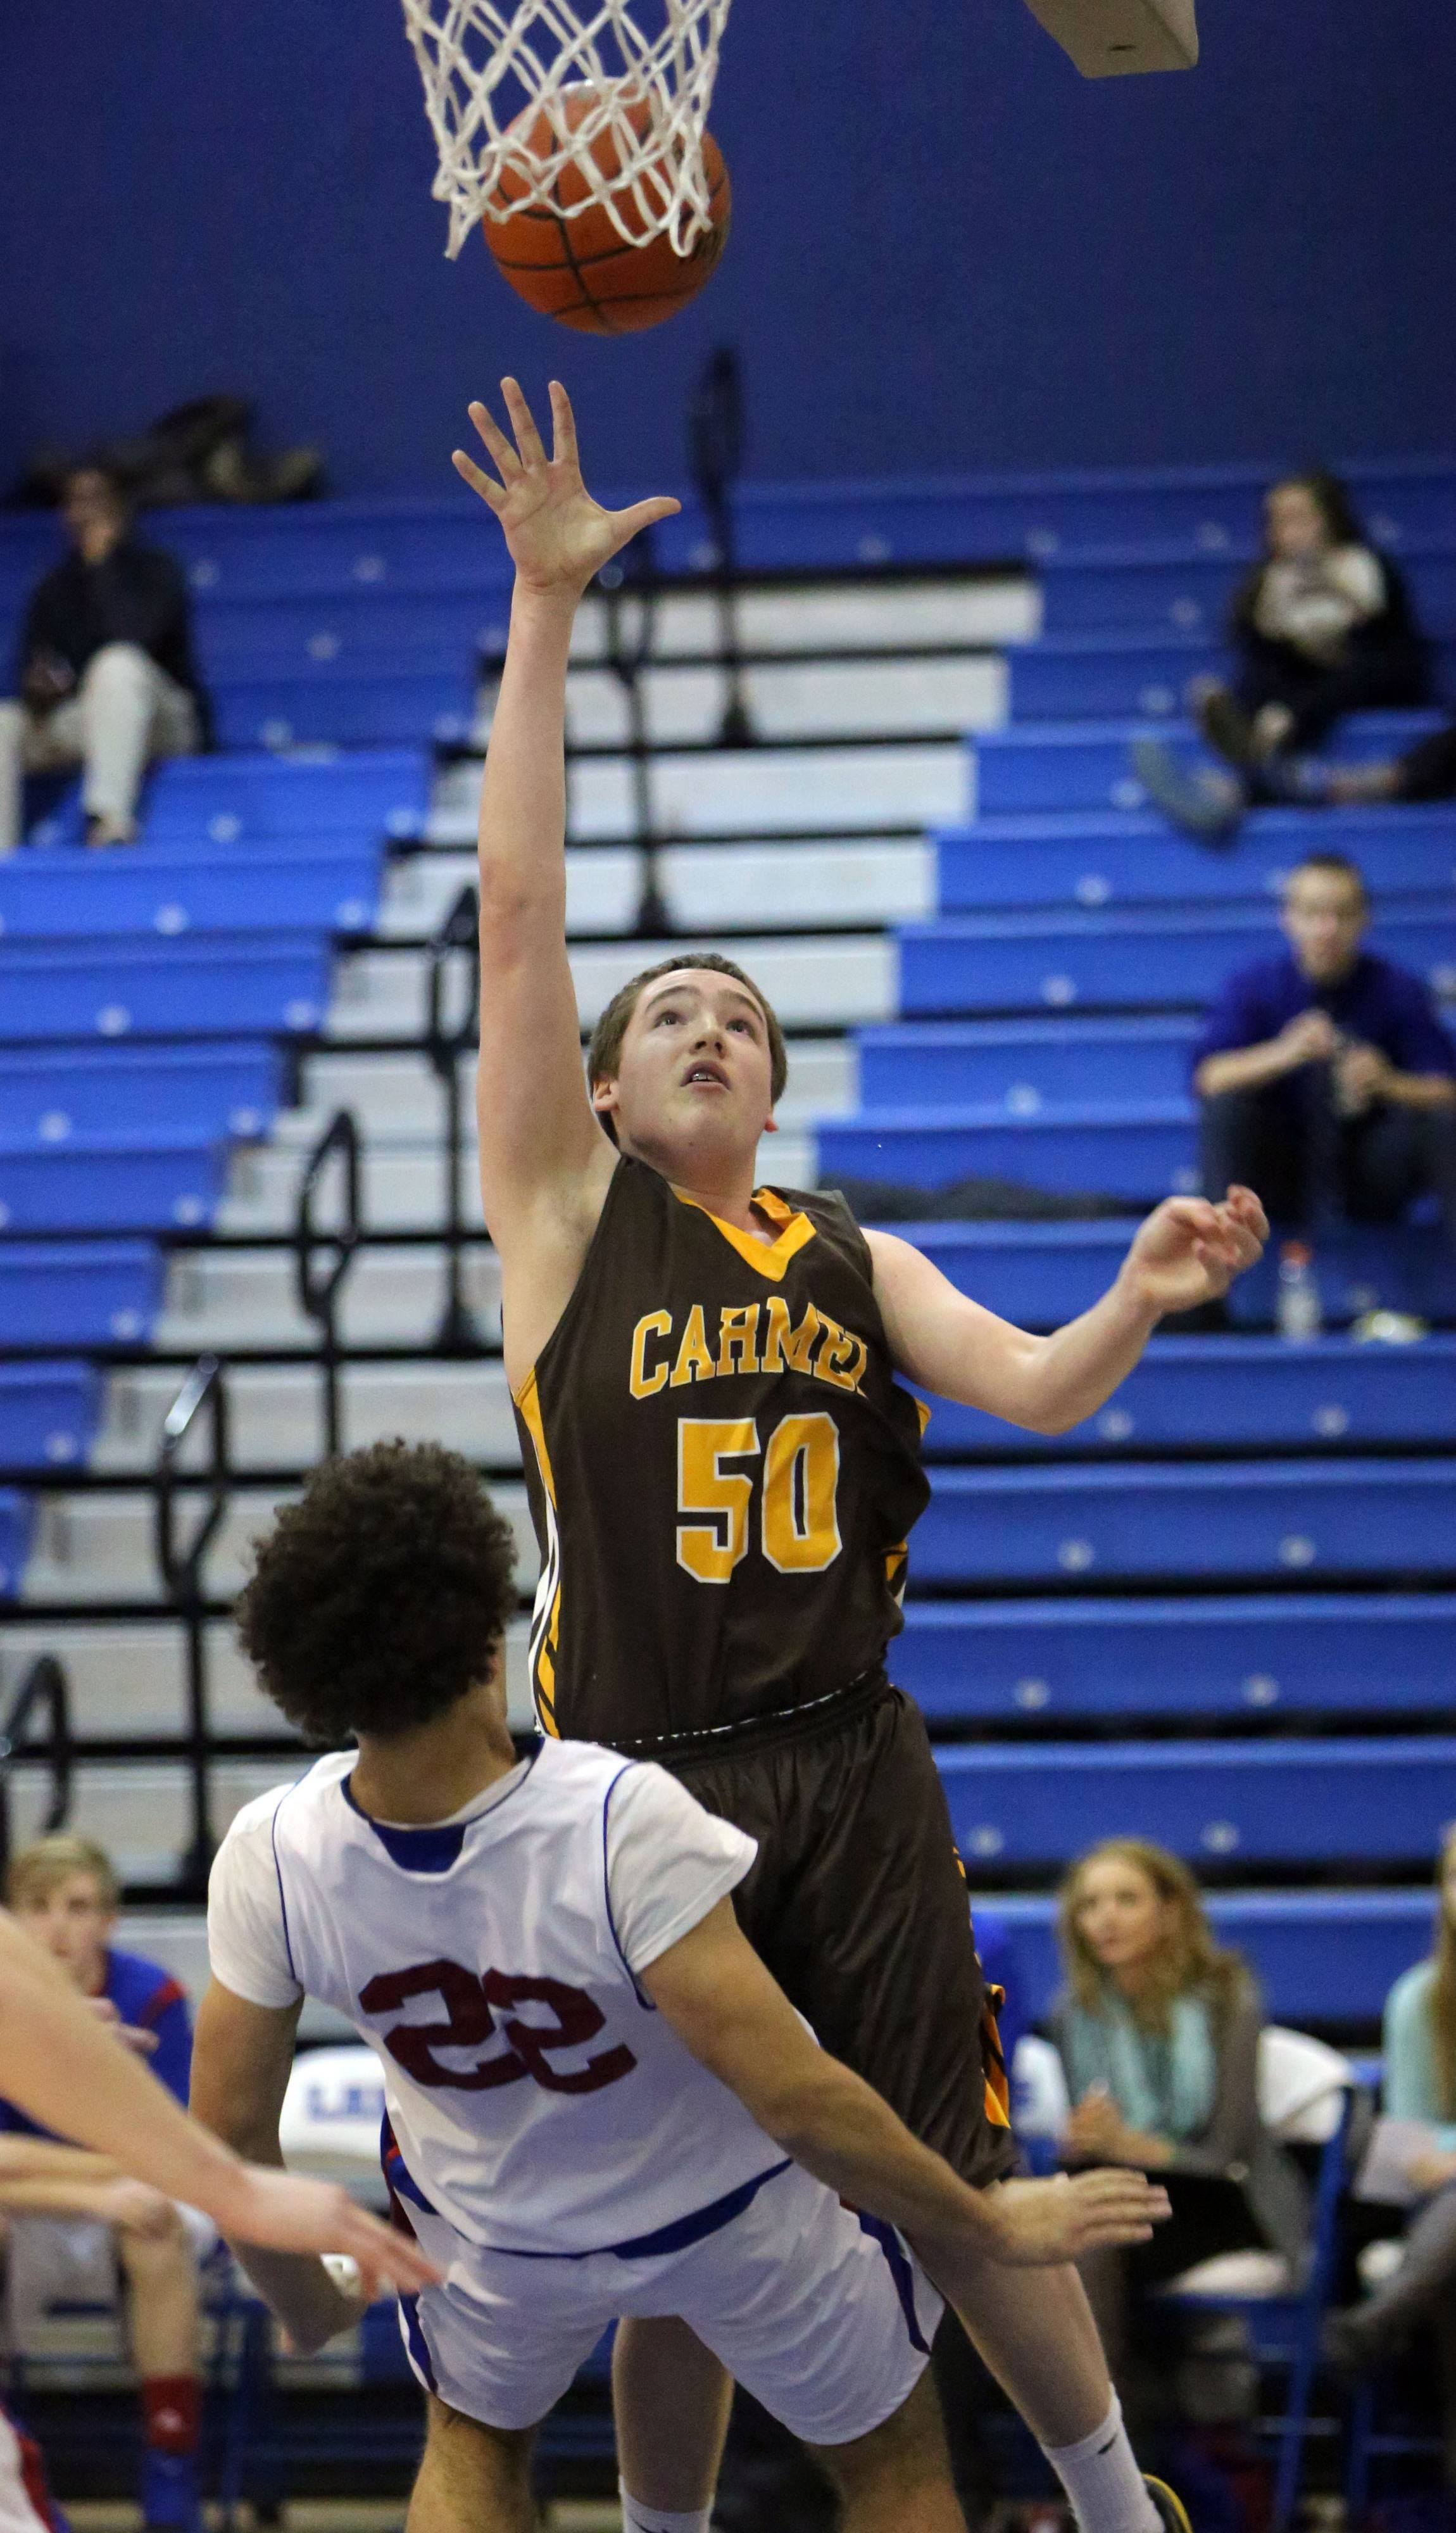 Carmel's Lee Bowen, right, is called for a charge as he drives on Lakes' Tramone Hudson on Monday night at Lakes.